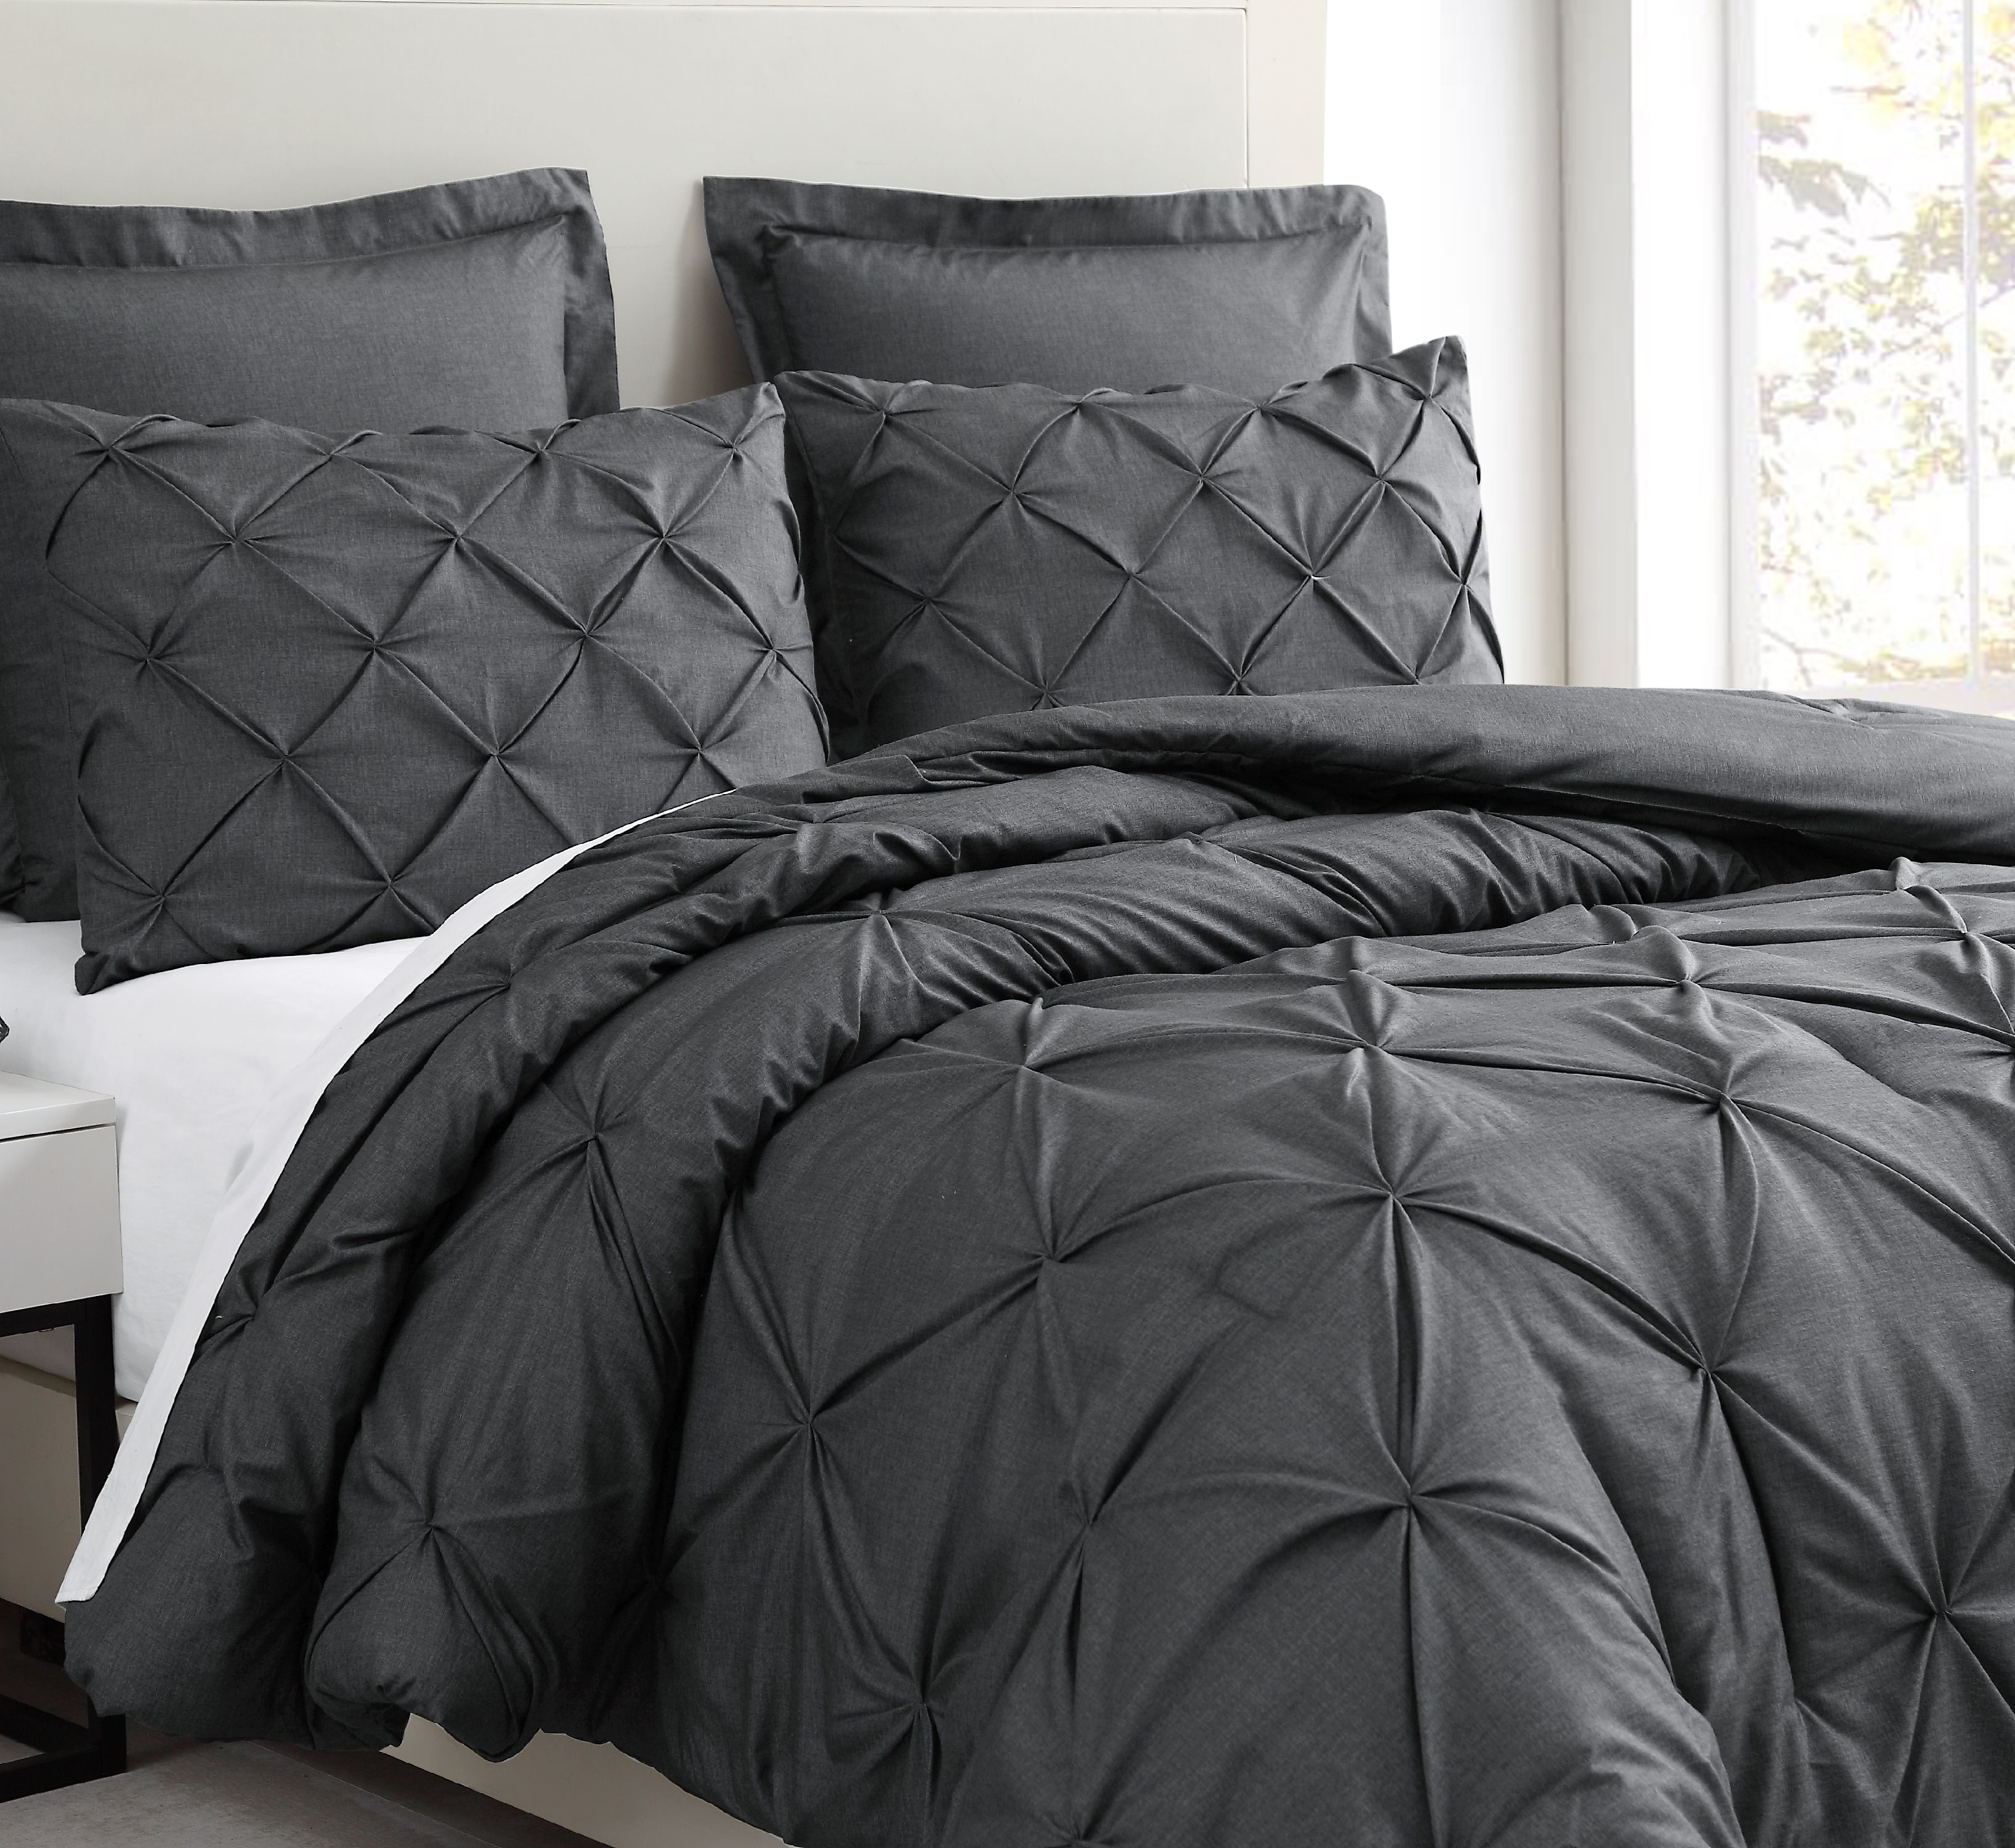 Estellar 3pc Light Grey Comforter Set Queen Size Pinch Pleat Pattern Down Alternative Pintuck Bedding by Cozy Beddings